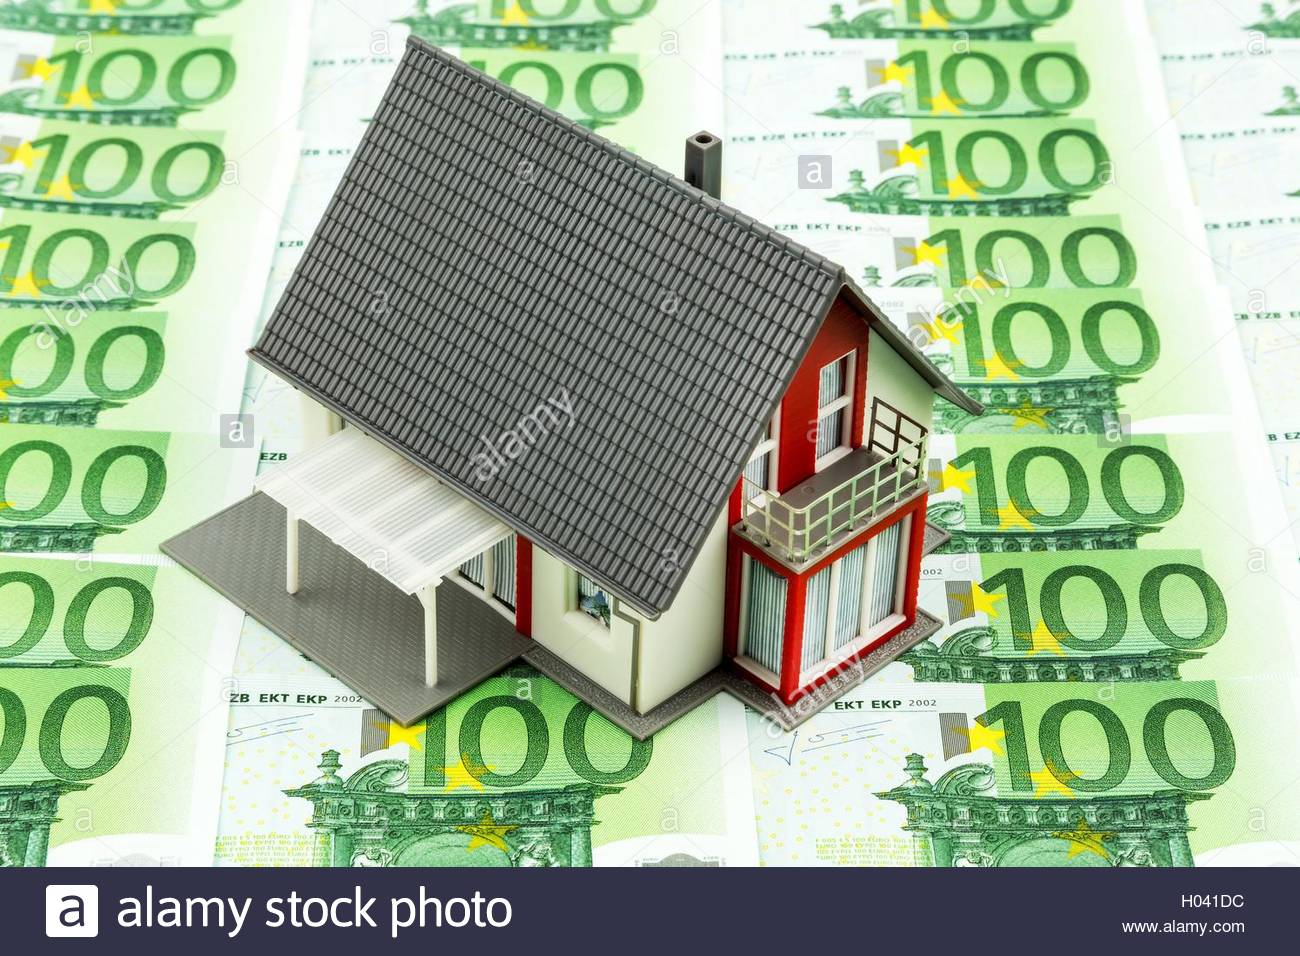 Immobilien Finazierung Immobilienfinanzierung Stock Photos Immobilienfinanzierung Stock